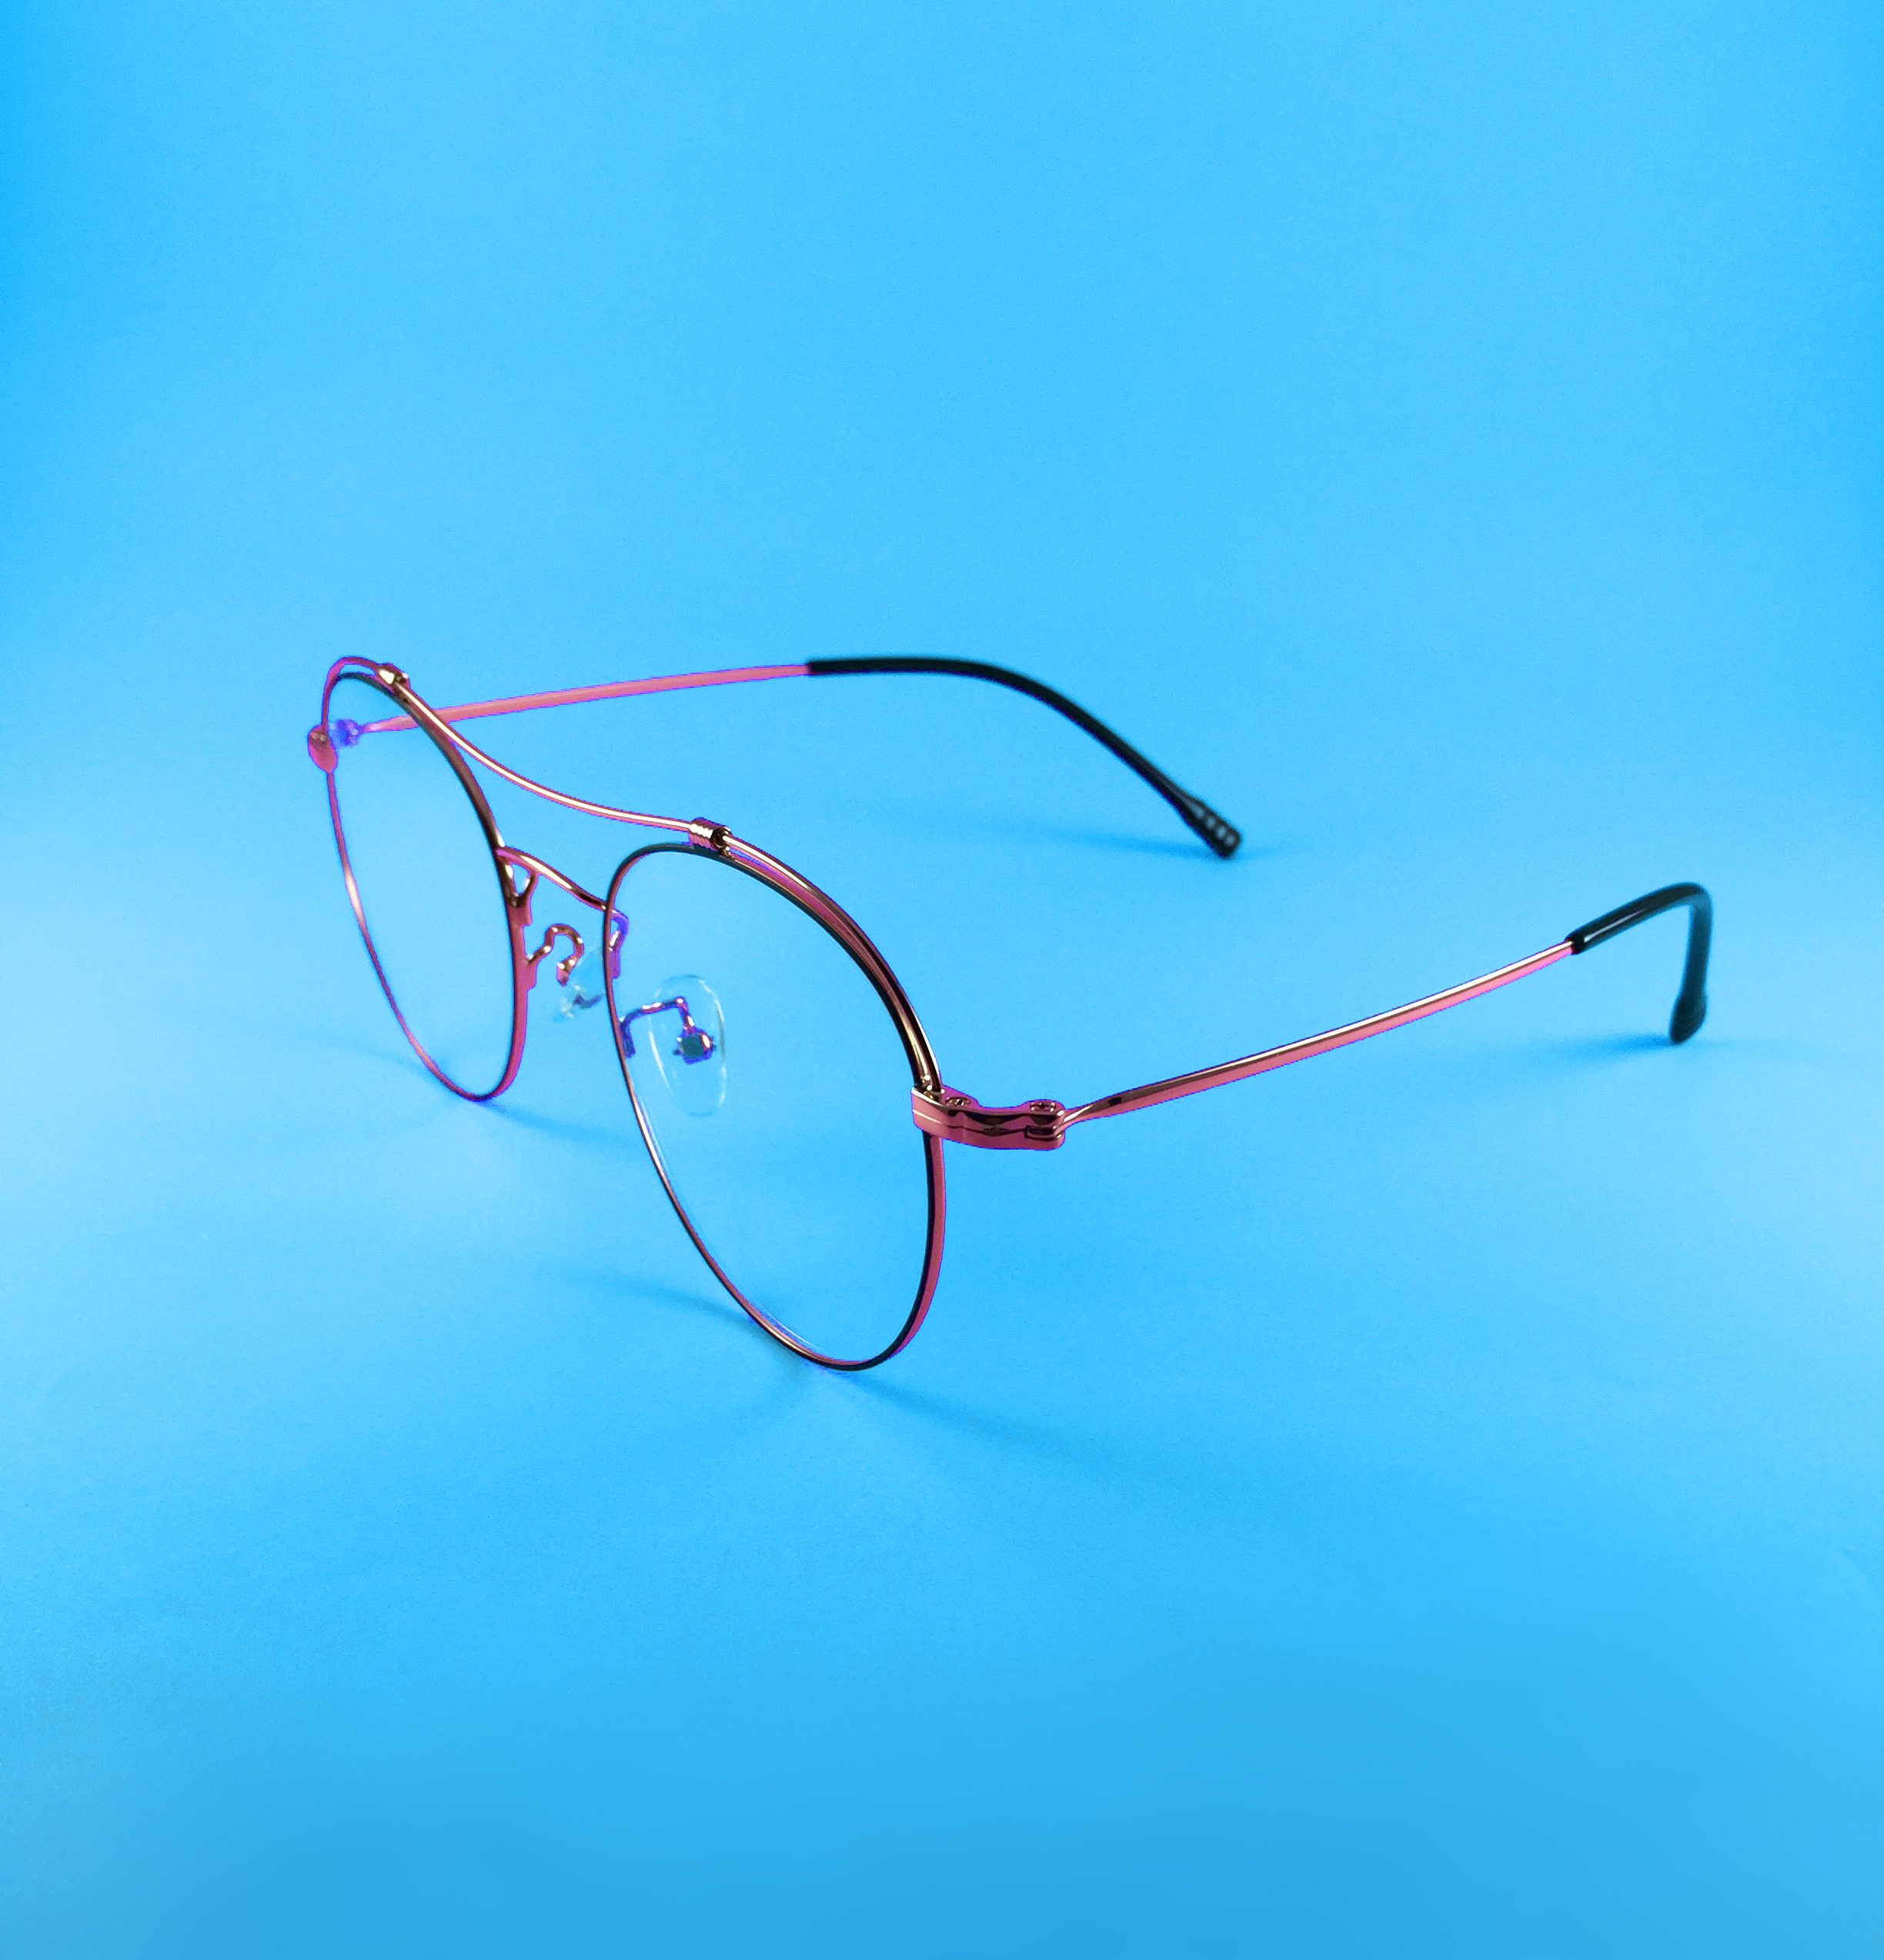 Glasses on a blue background